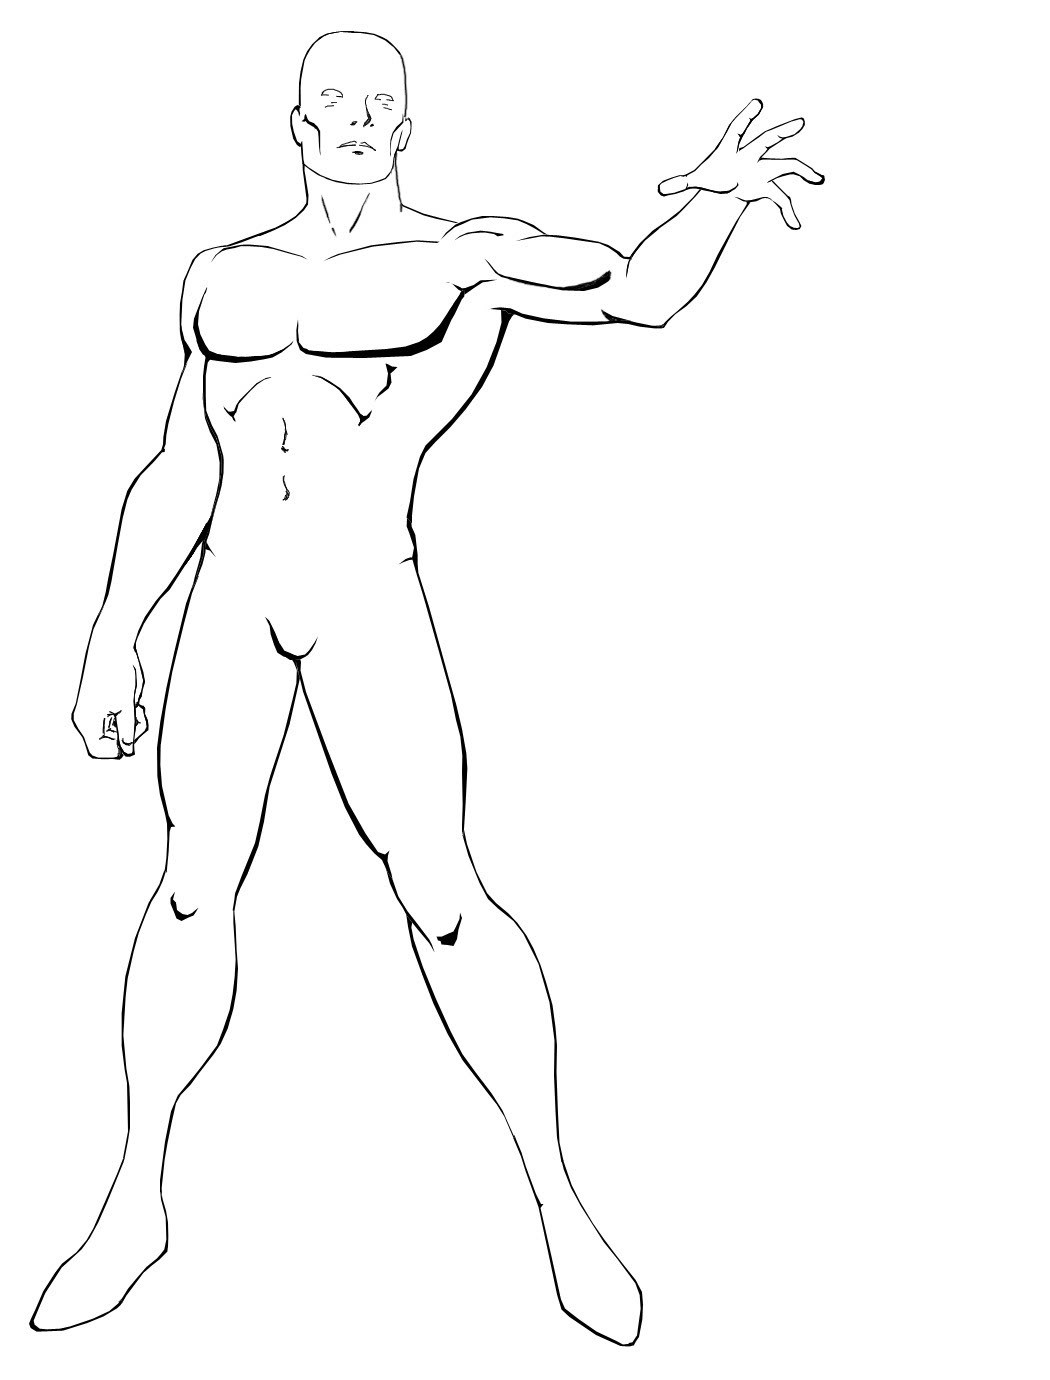 Human Body Drawing Template at GetDrawings.com | Free for personal ...